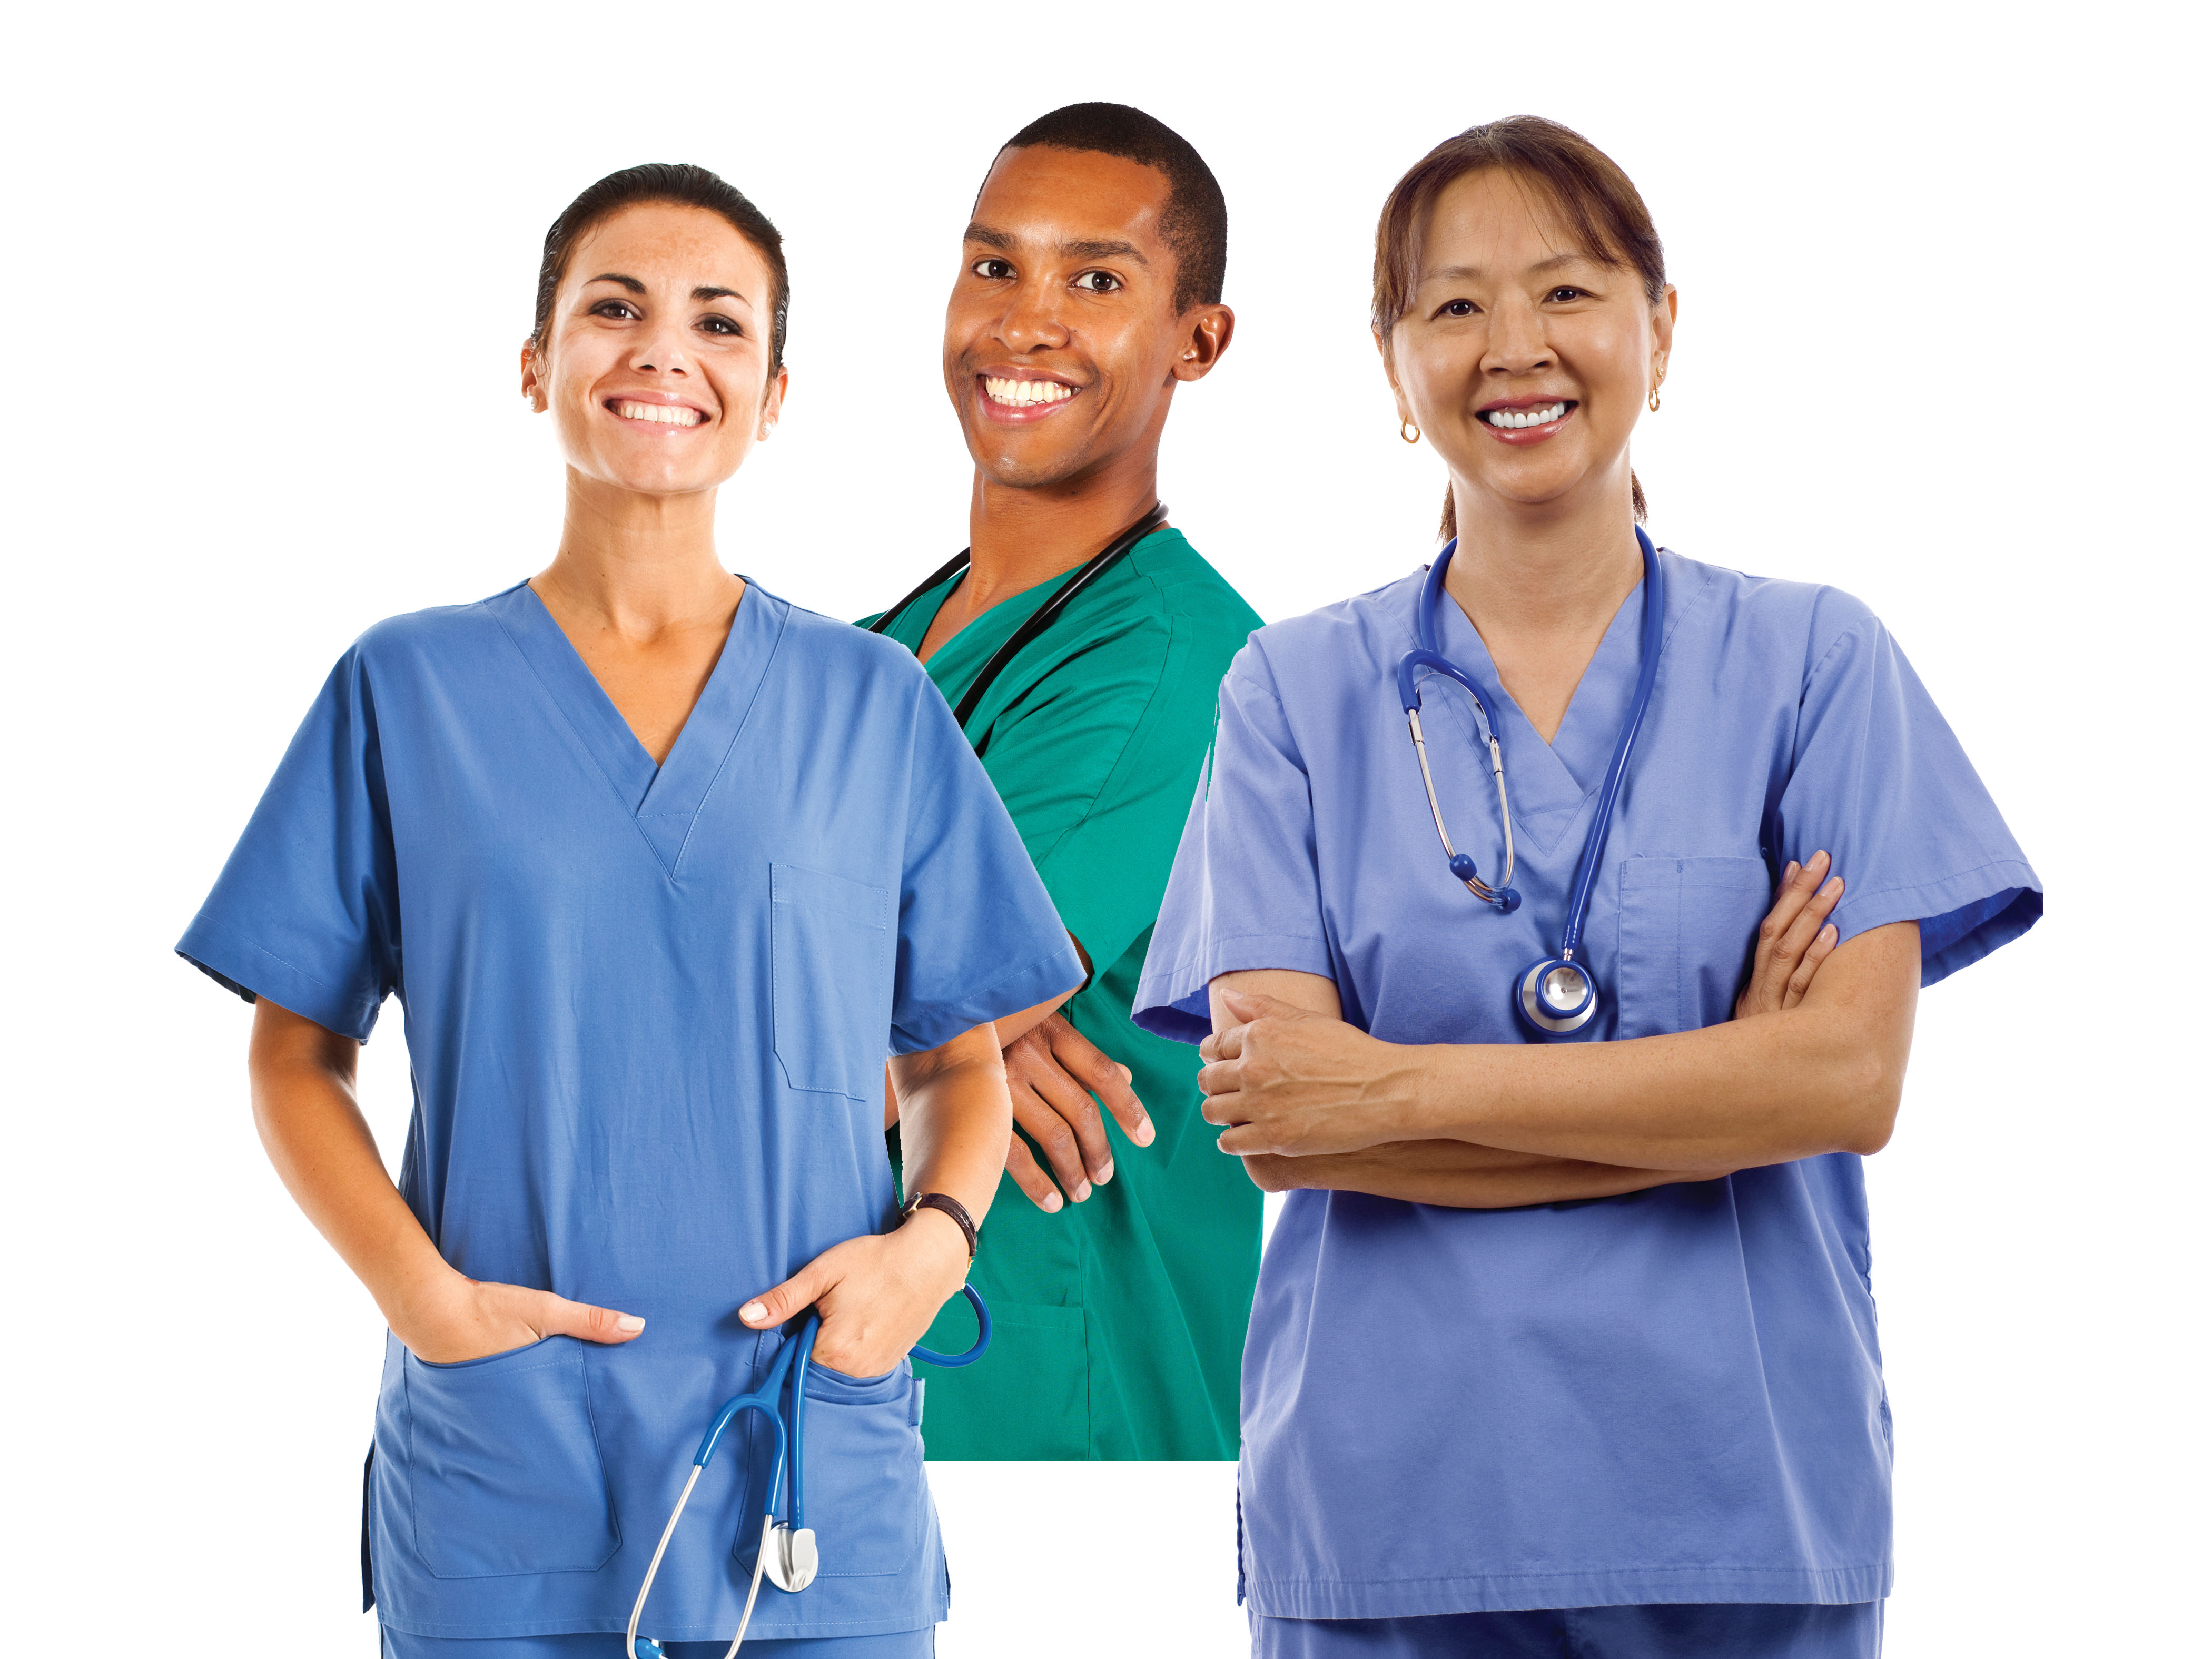 Nurses who are ready to answer questions.